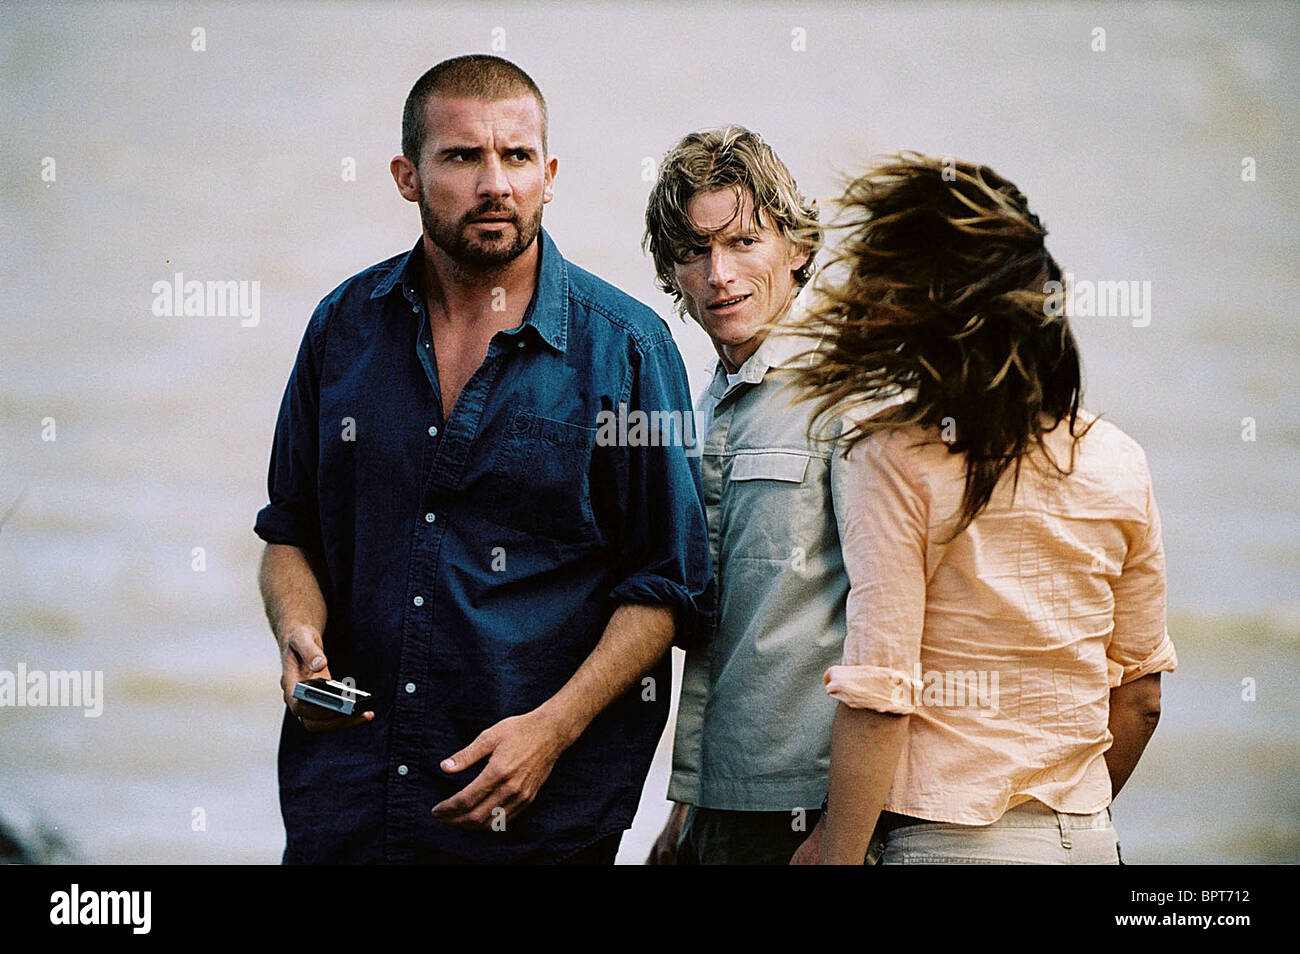 DOMINIC PURCELL GIDEON EMERY & BROOKE LANGTON PRIMEVAL (2007) - Stock Image